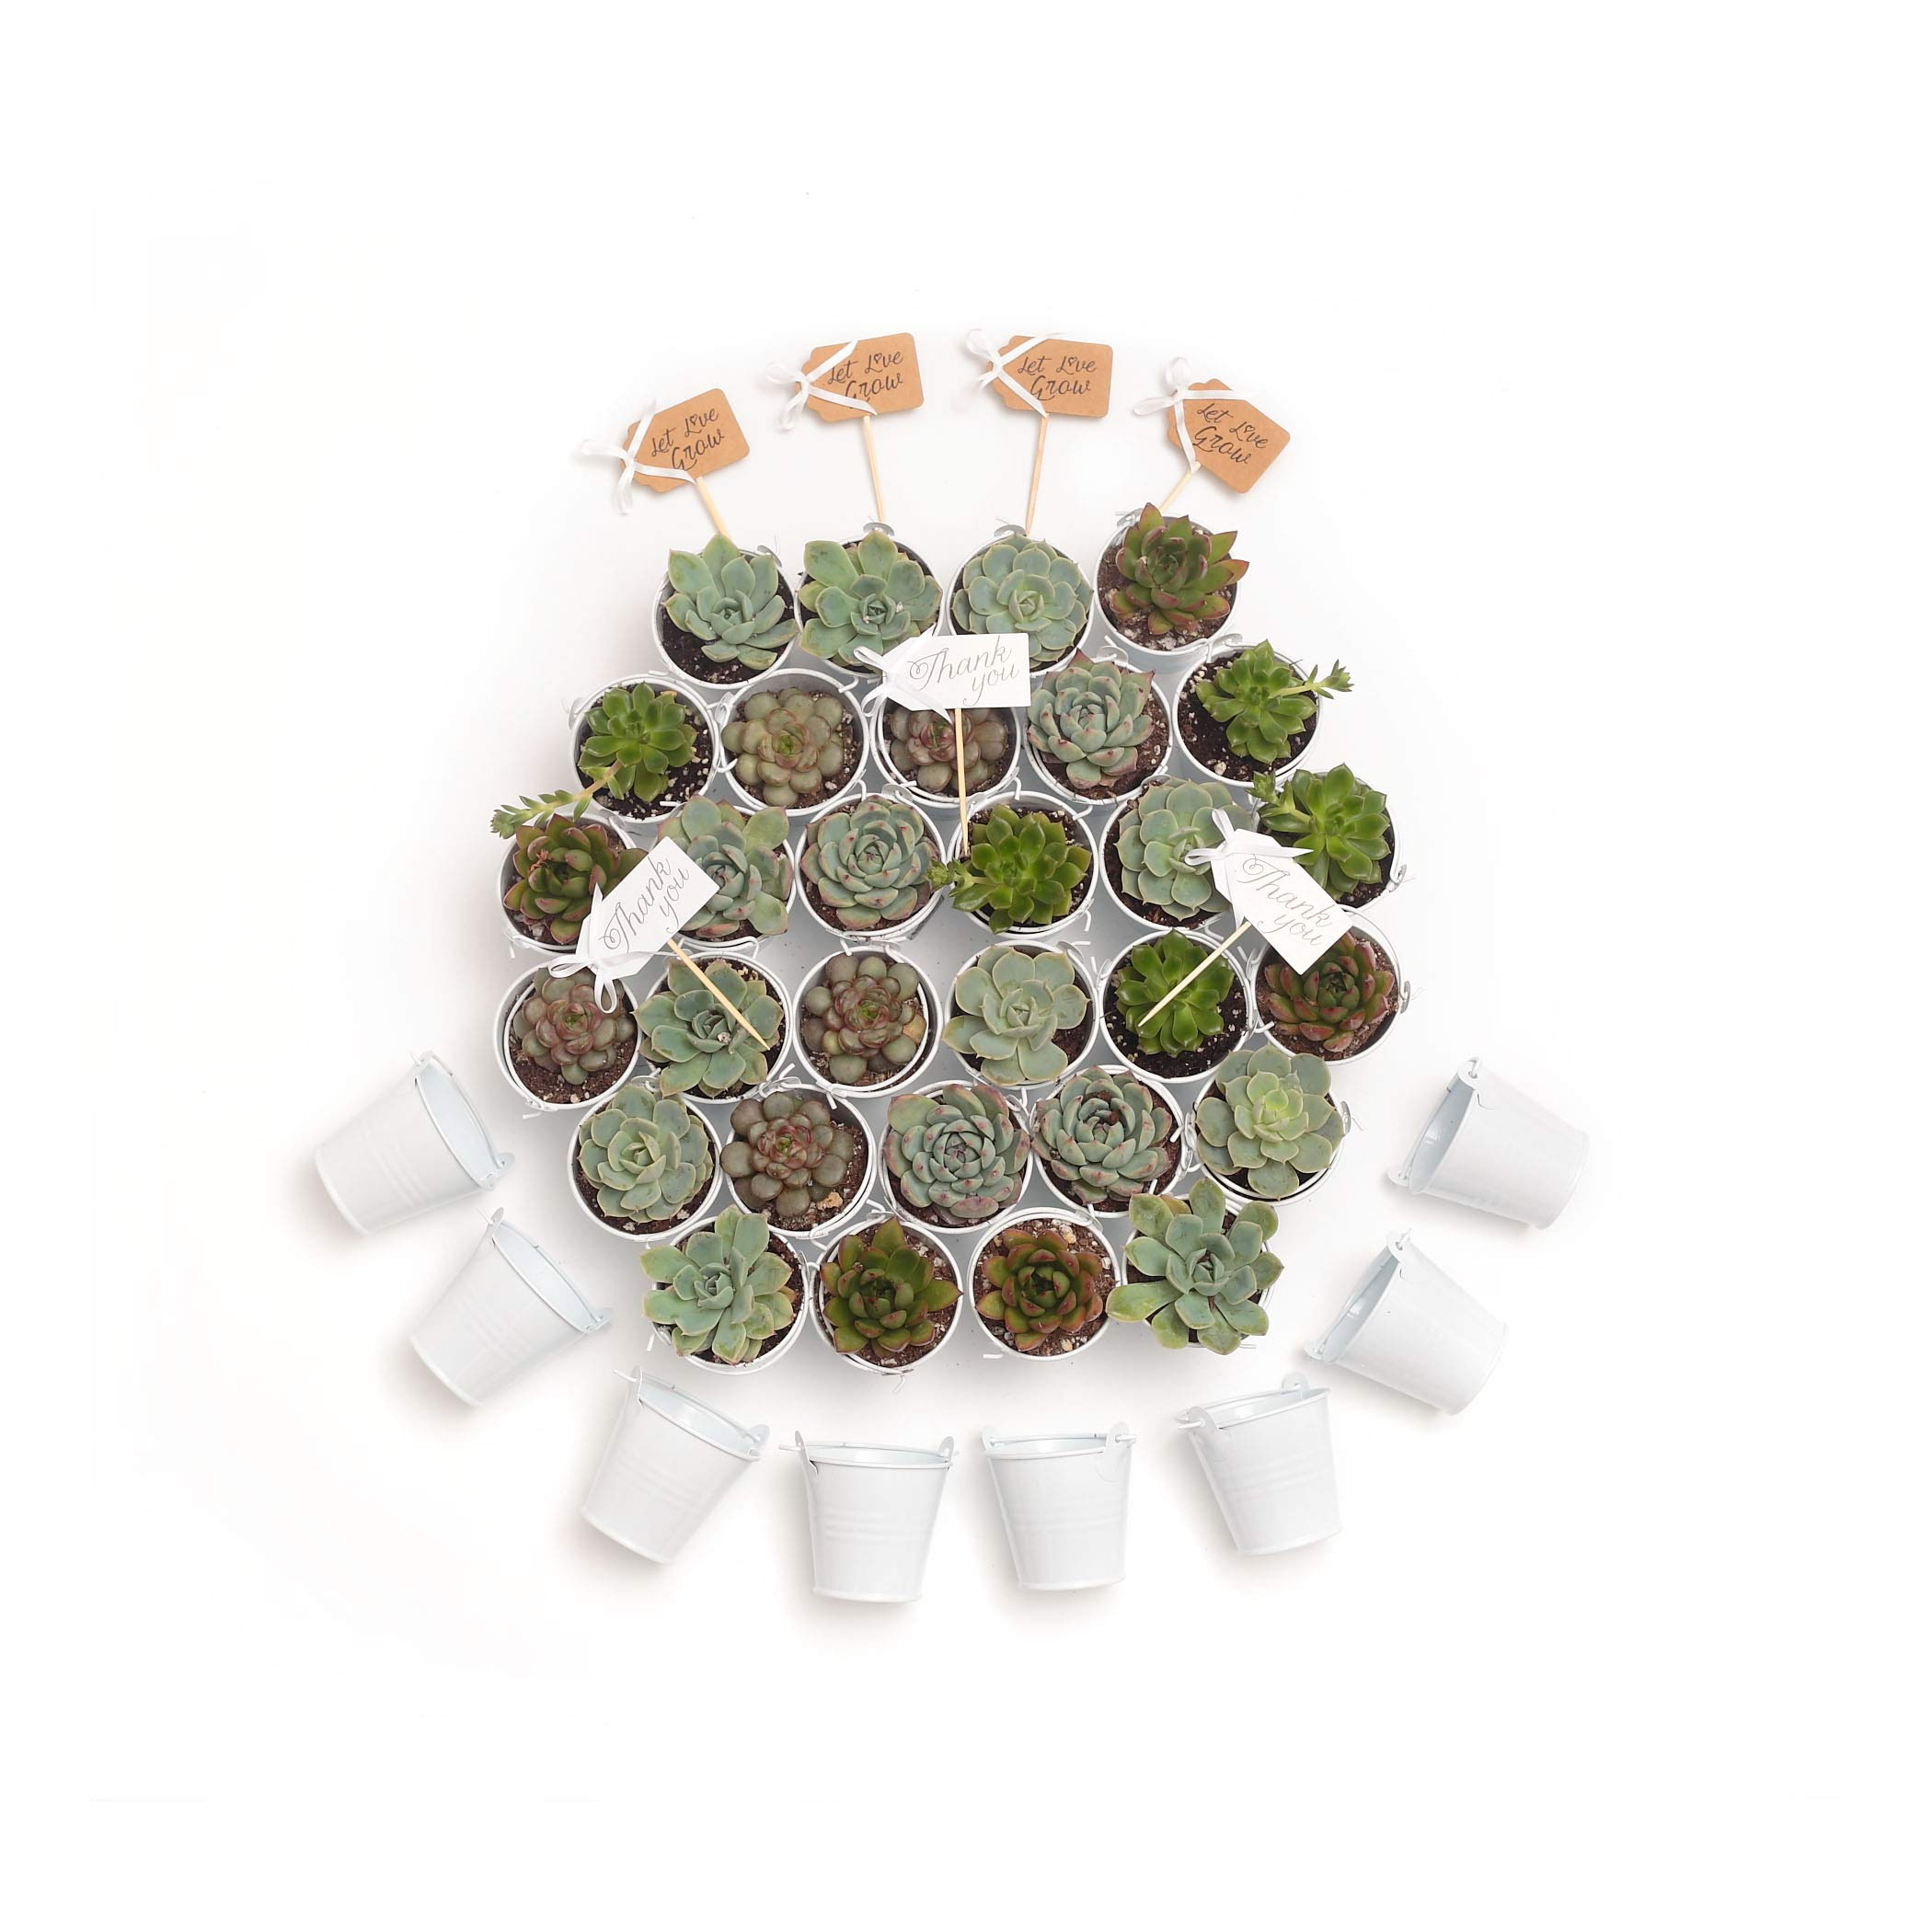 2 in. Wedding Event Rosette Succulents with White Metal Pails and Thank You Tags (60) by Succulent Source (Image #4)